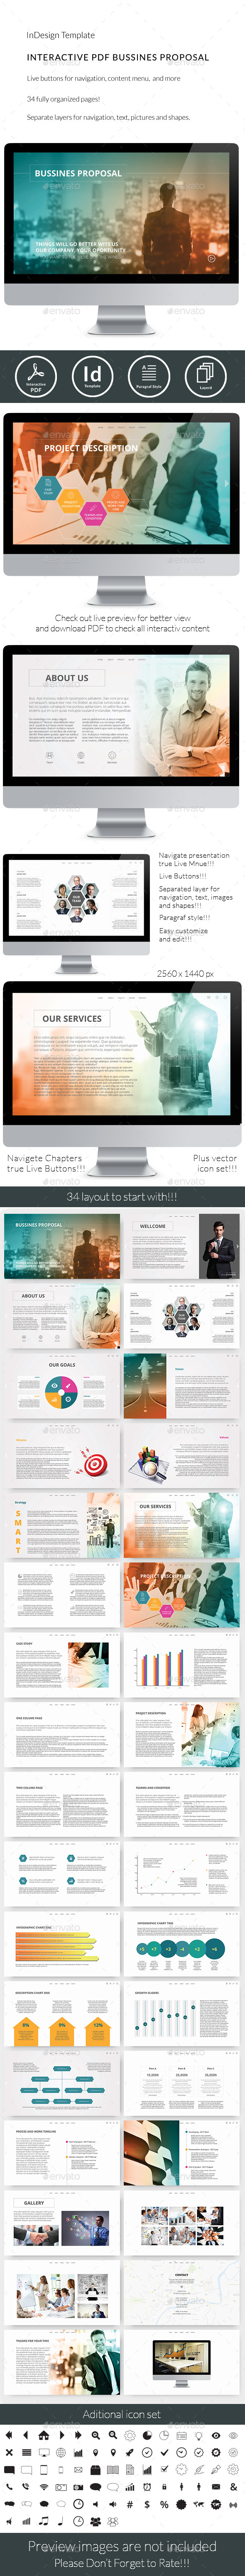 Interactive PDF Business Proposal No3 - ePublishing